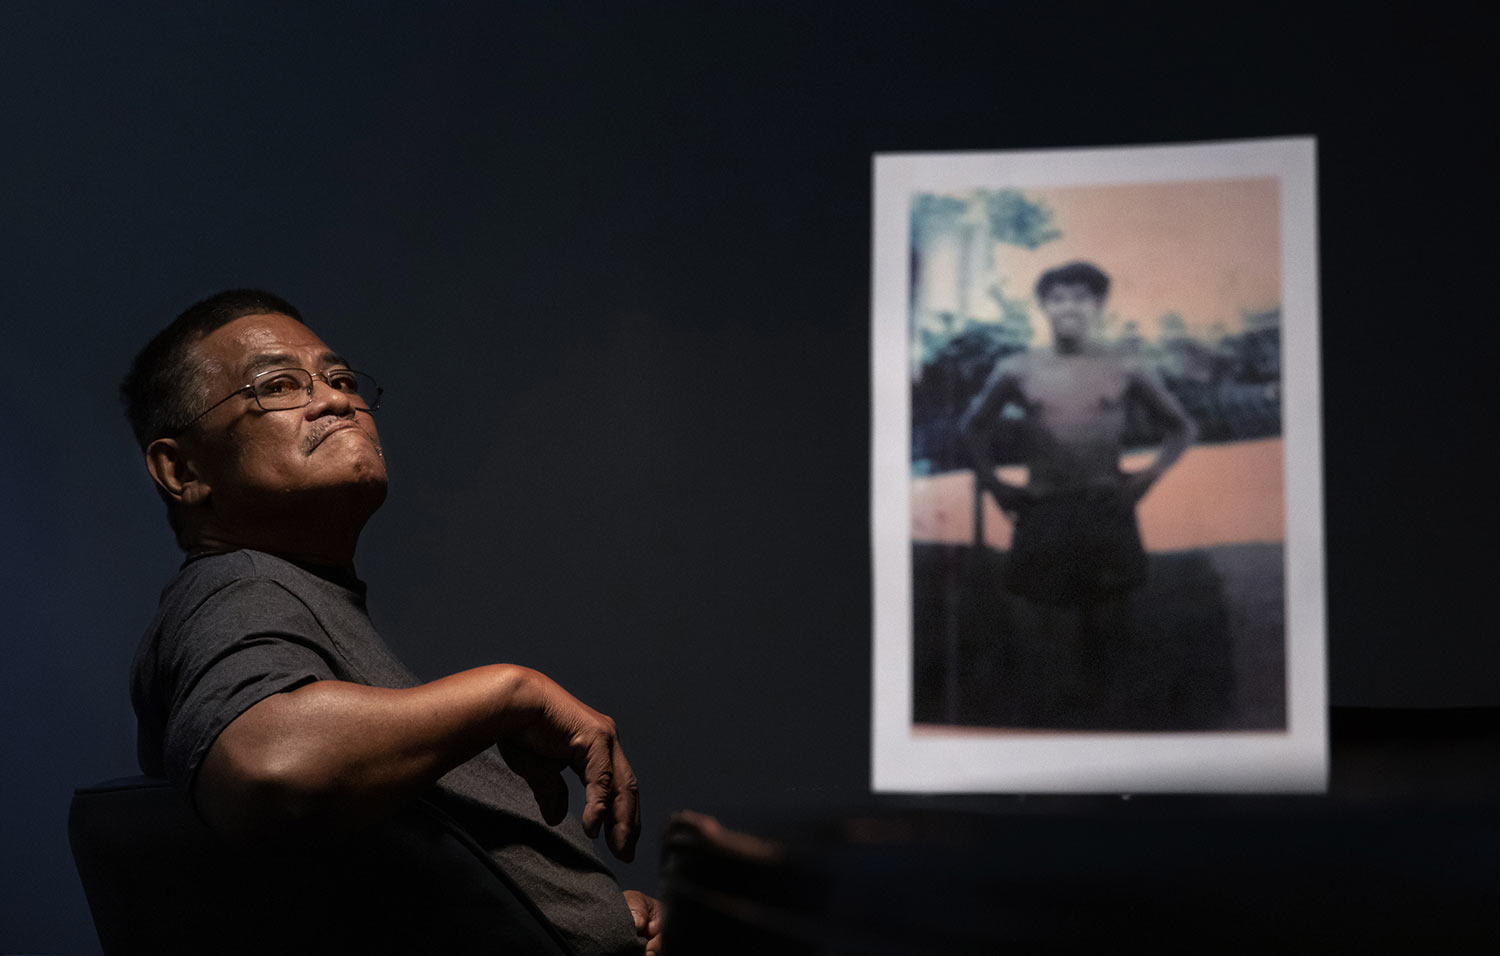 Anthony Vegafria, 59, sits behind a photo of himself when he was 13 years old. (AP Photo/David Goldman)